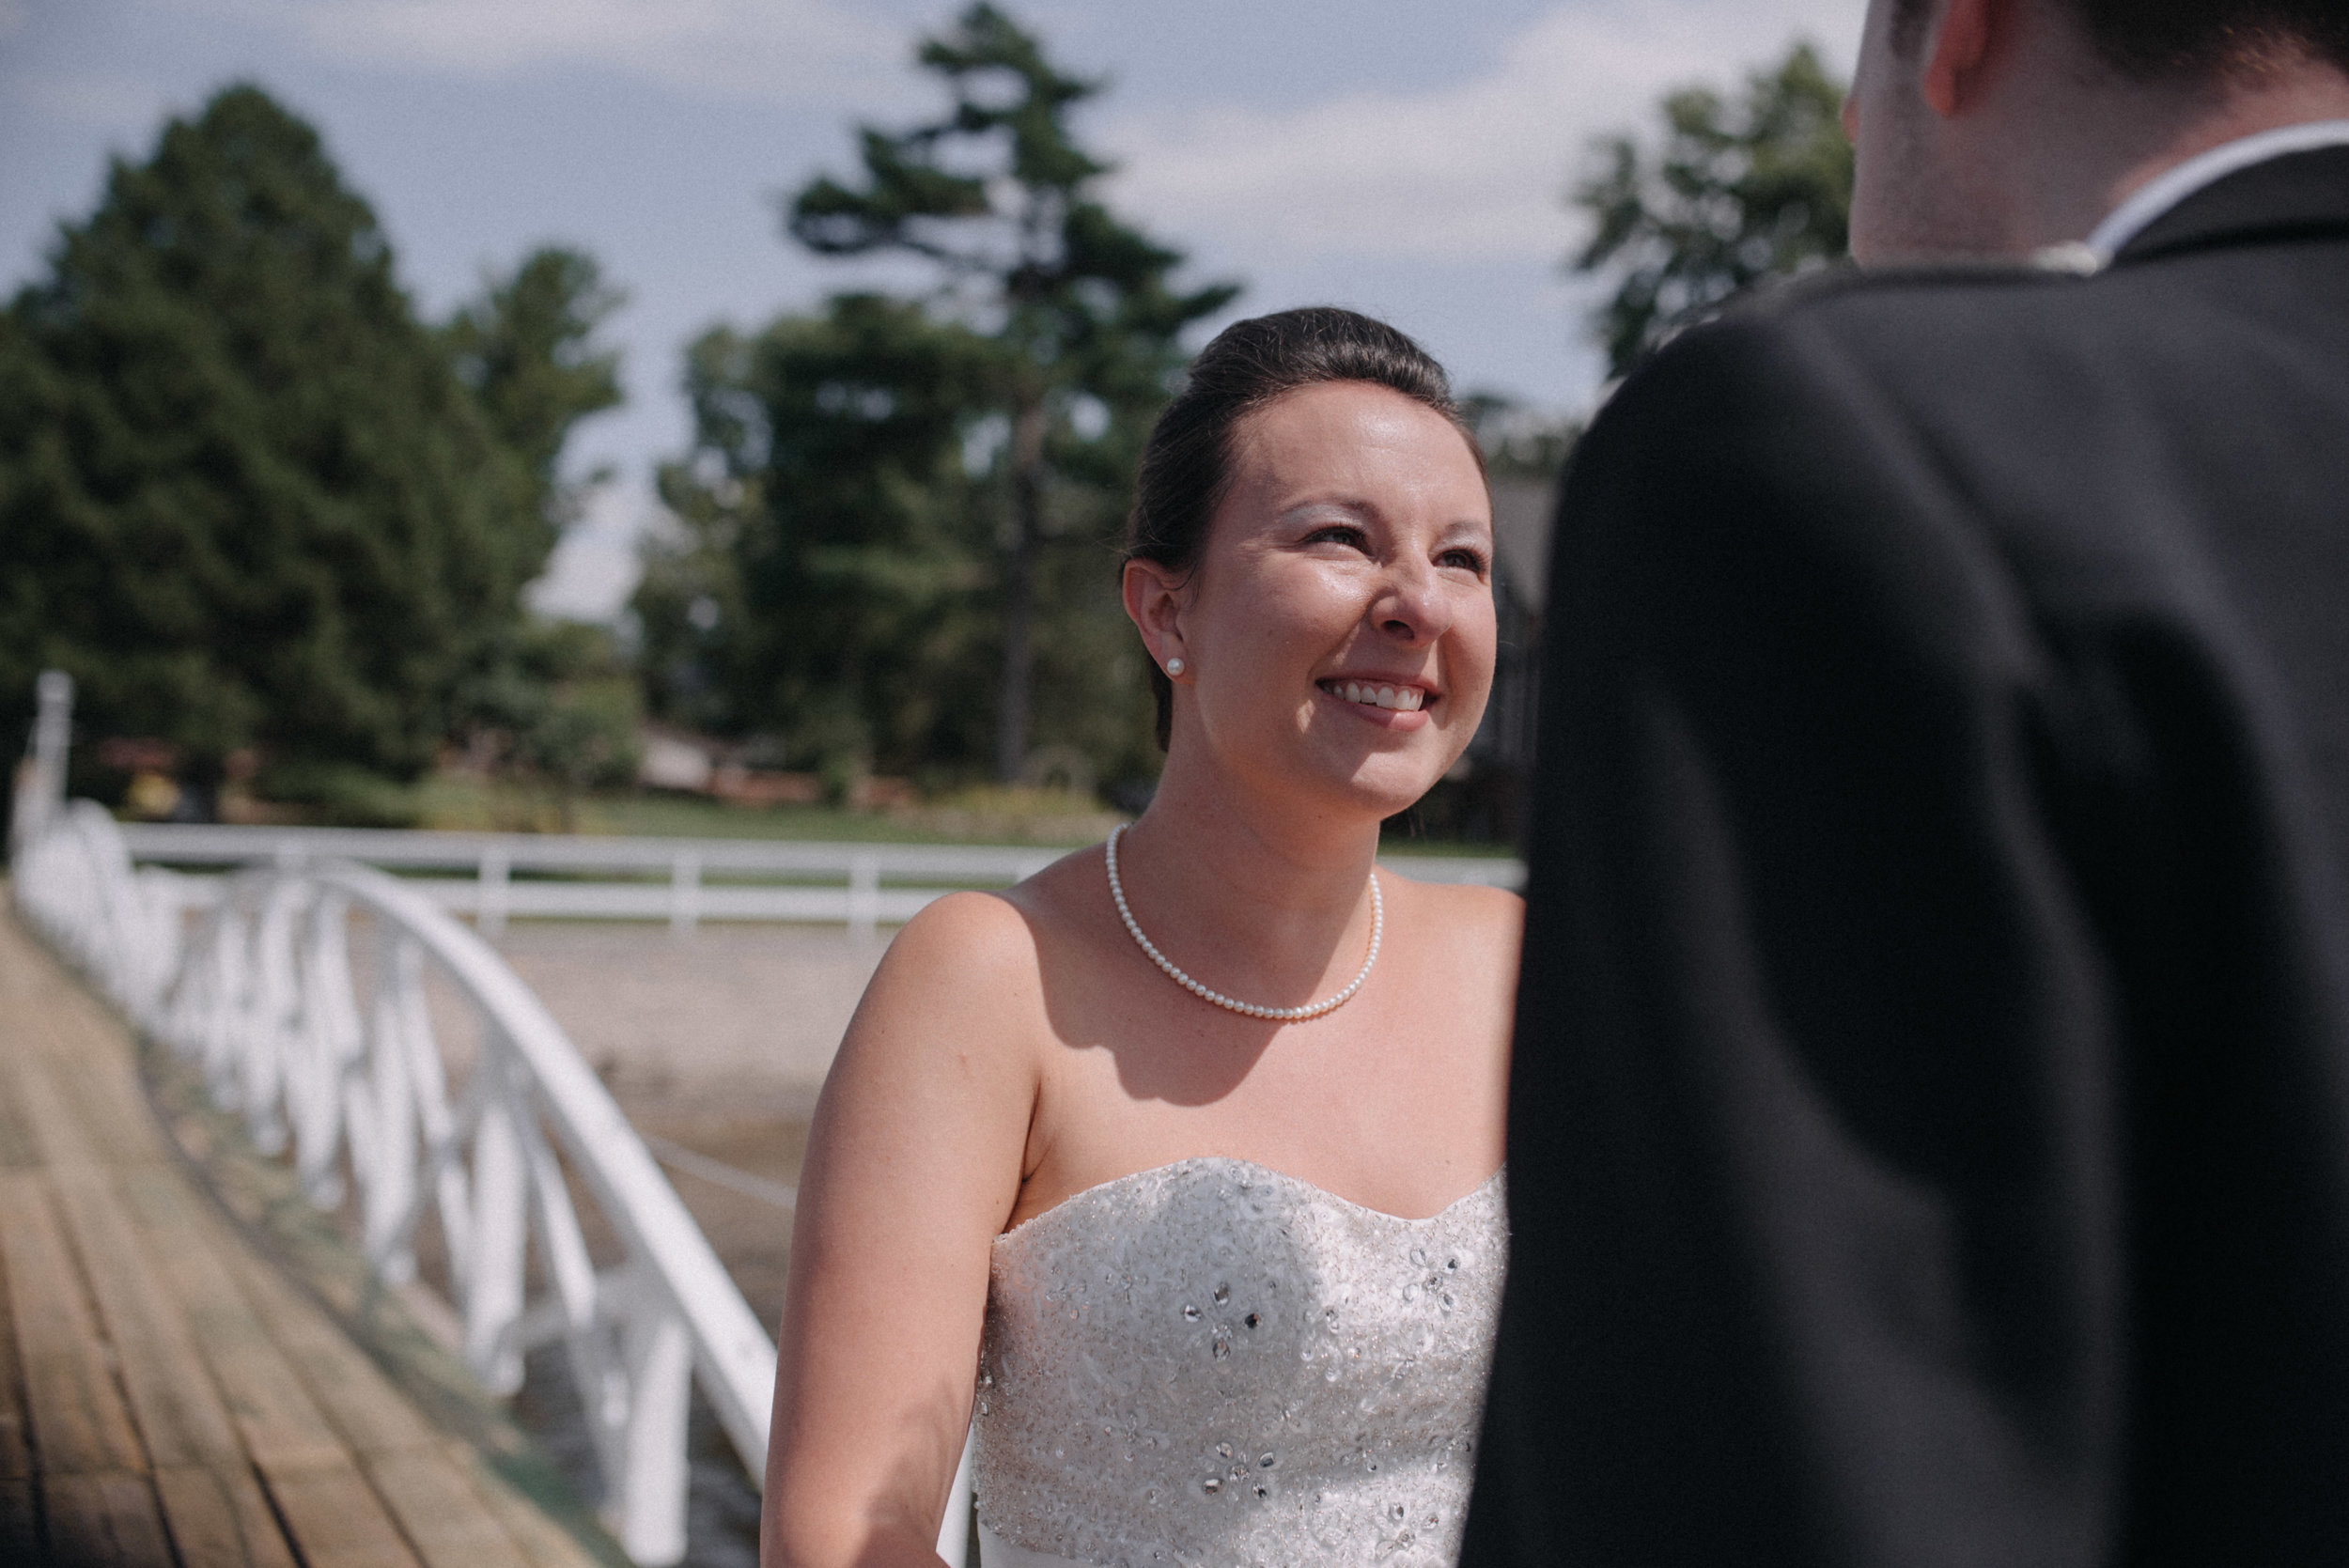 photographe_gatineau_mariage_ottawa_photographer_wedding_natasha_liard_photo_documentary_candid_lifestyle (9).jpg